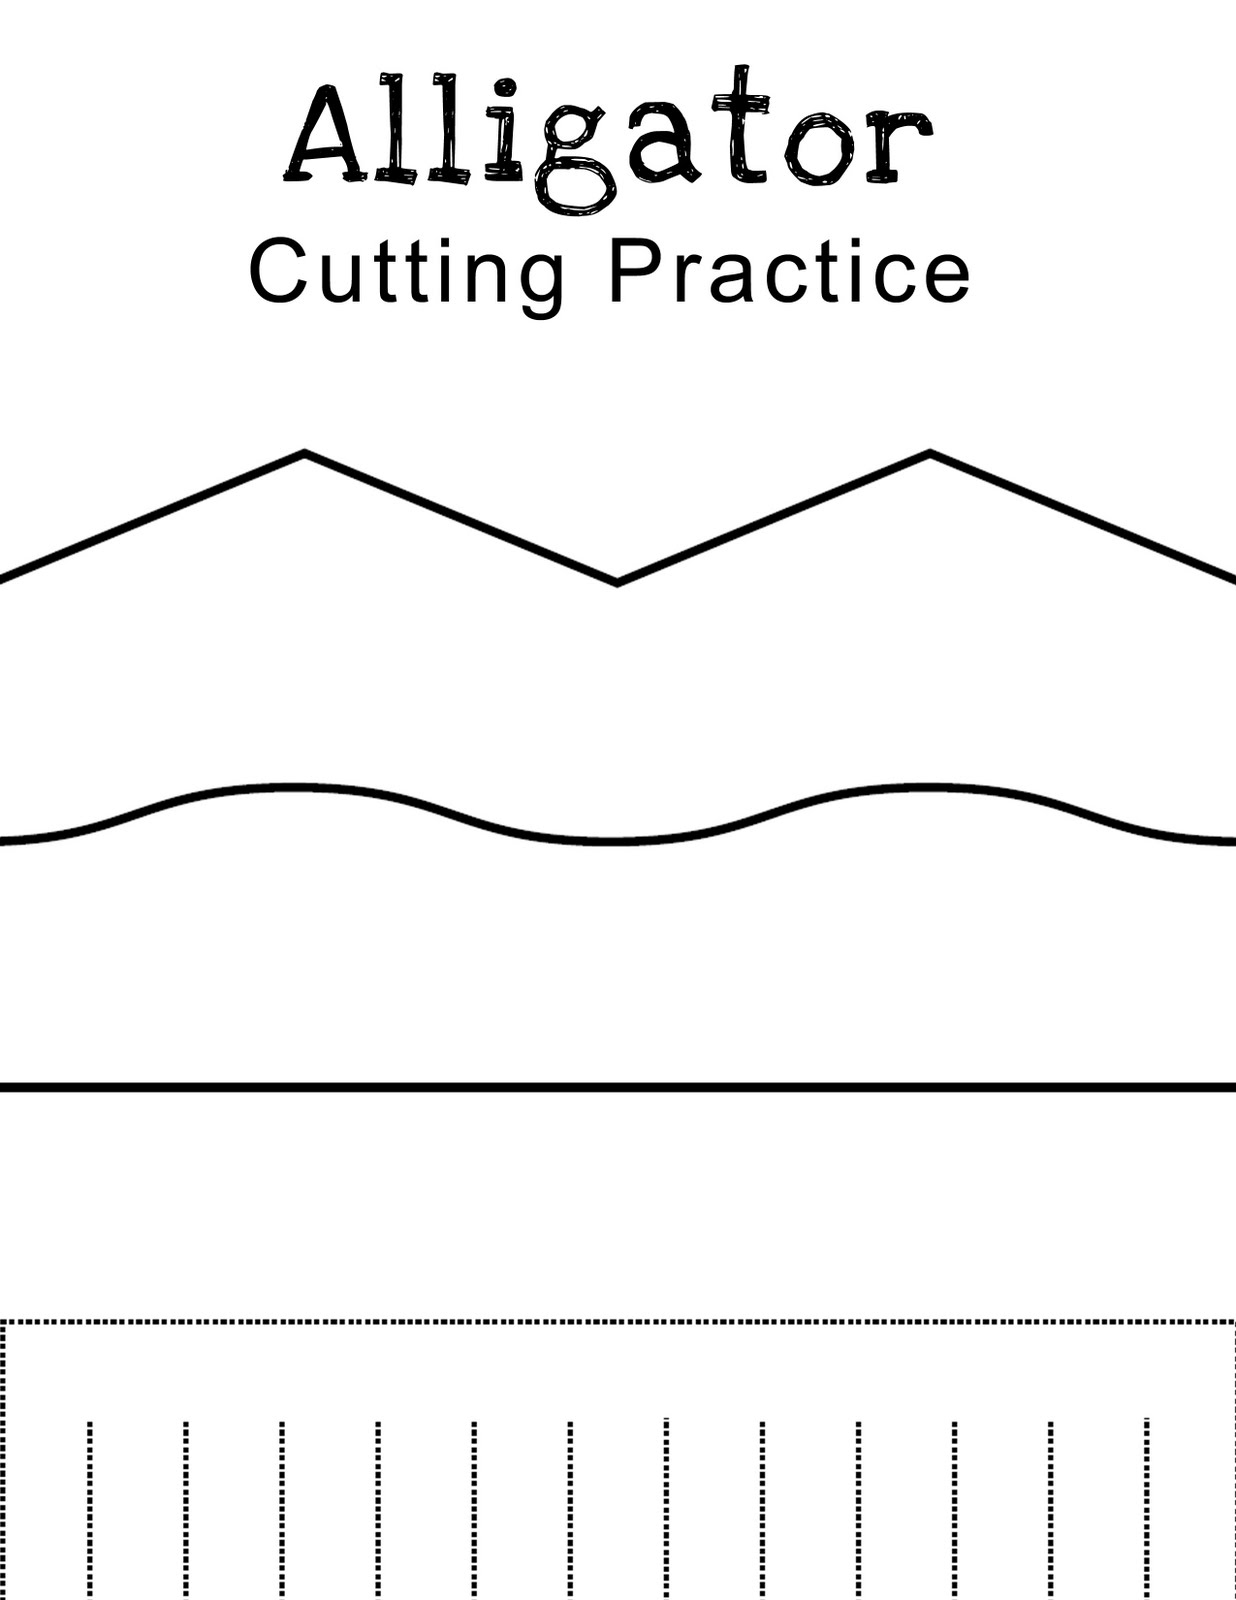 This is a picture of Influential Printable Cutting Practice